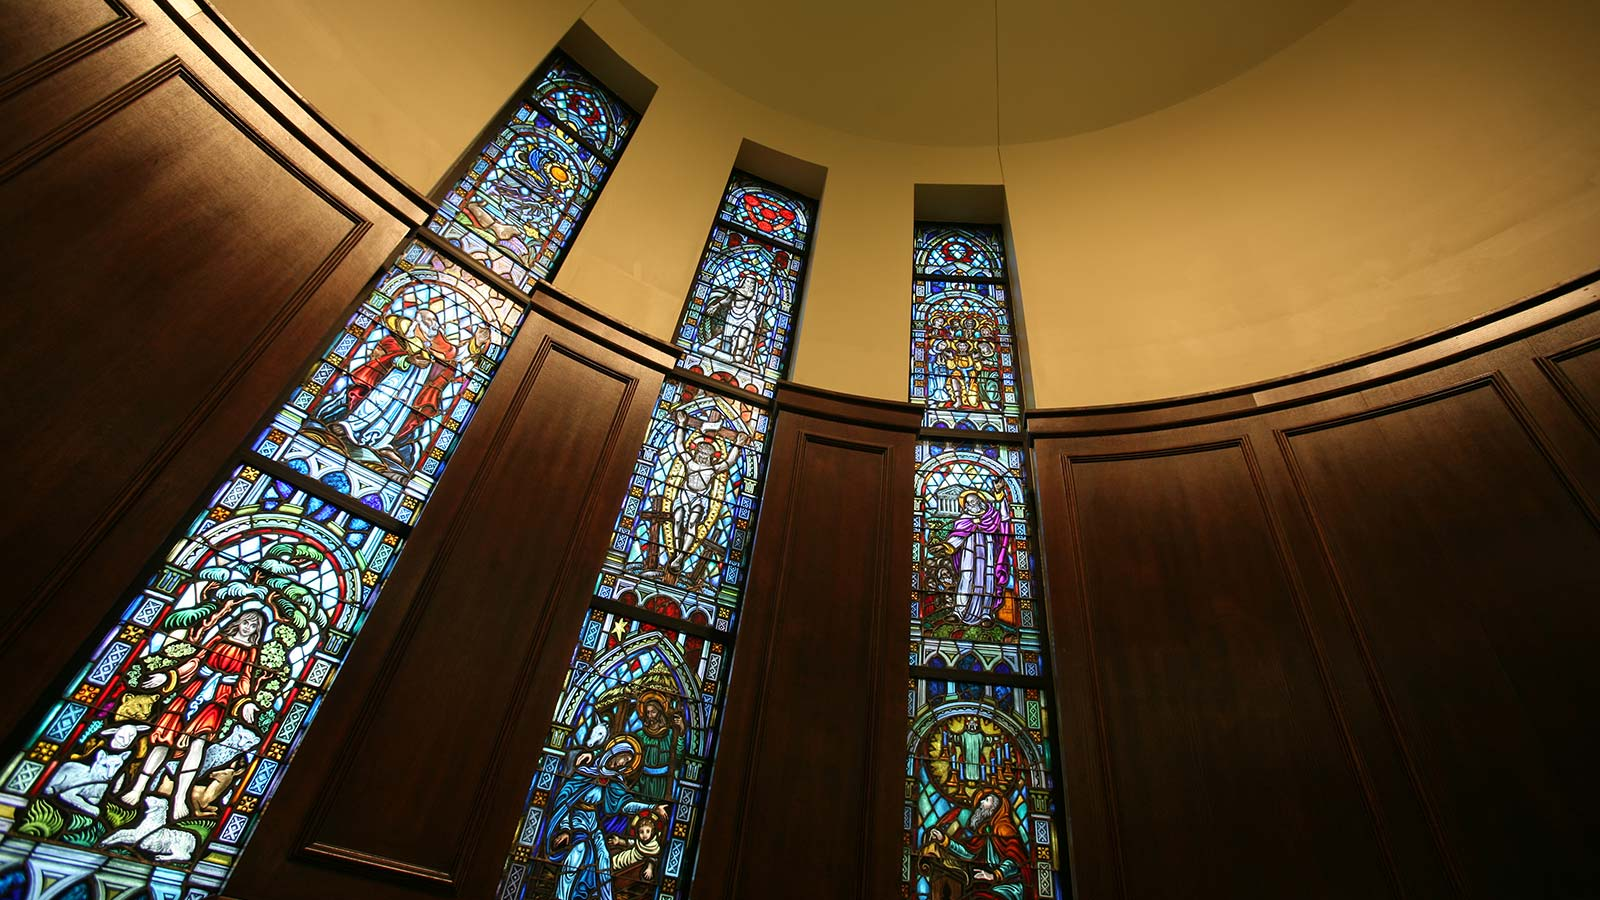 In the Baptist tradition of Baylor University, the Robbins Chapel provides a spiritually inspiring location for personal or small group worship and prayer.